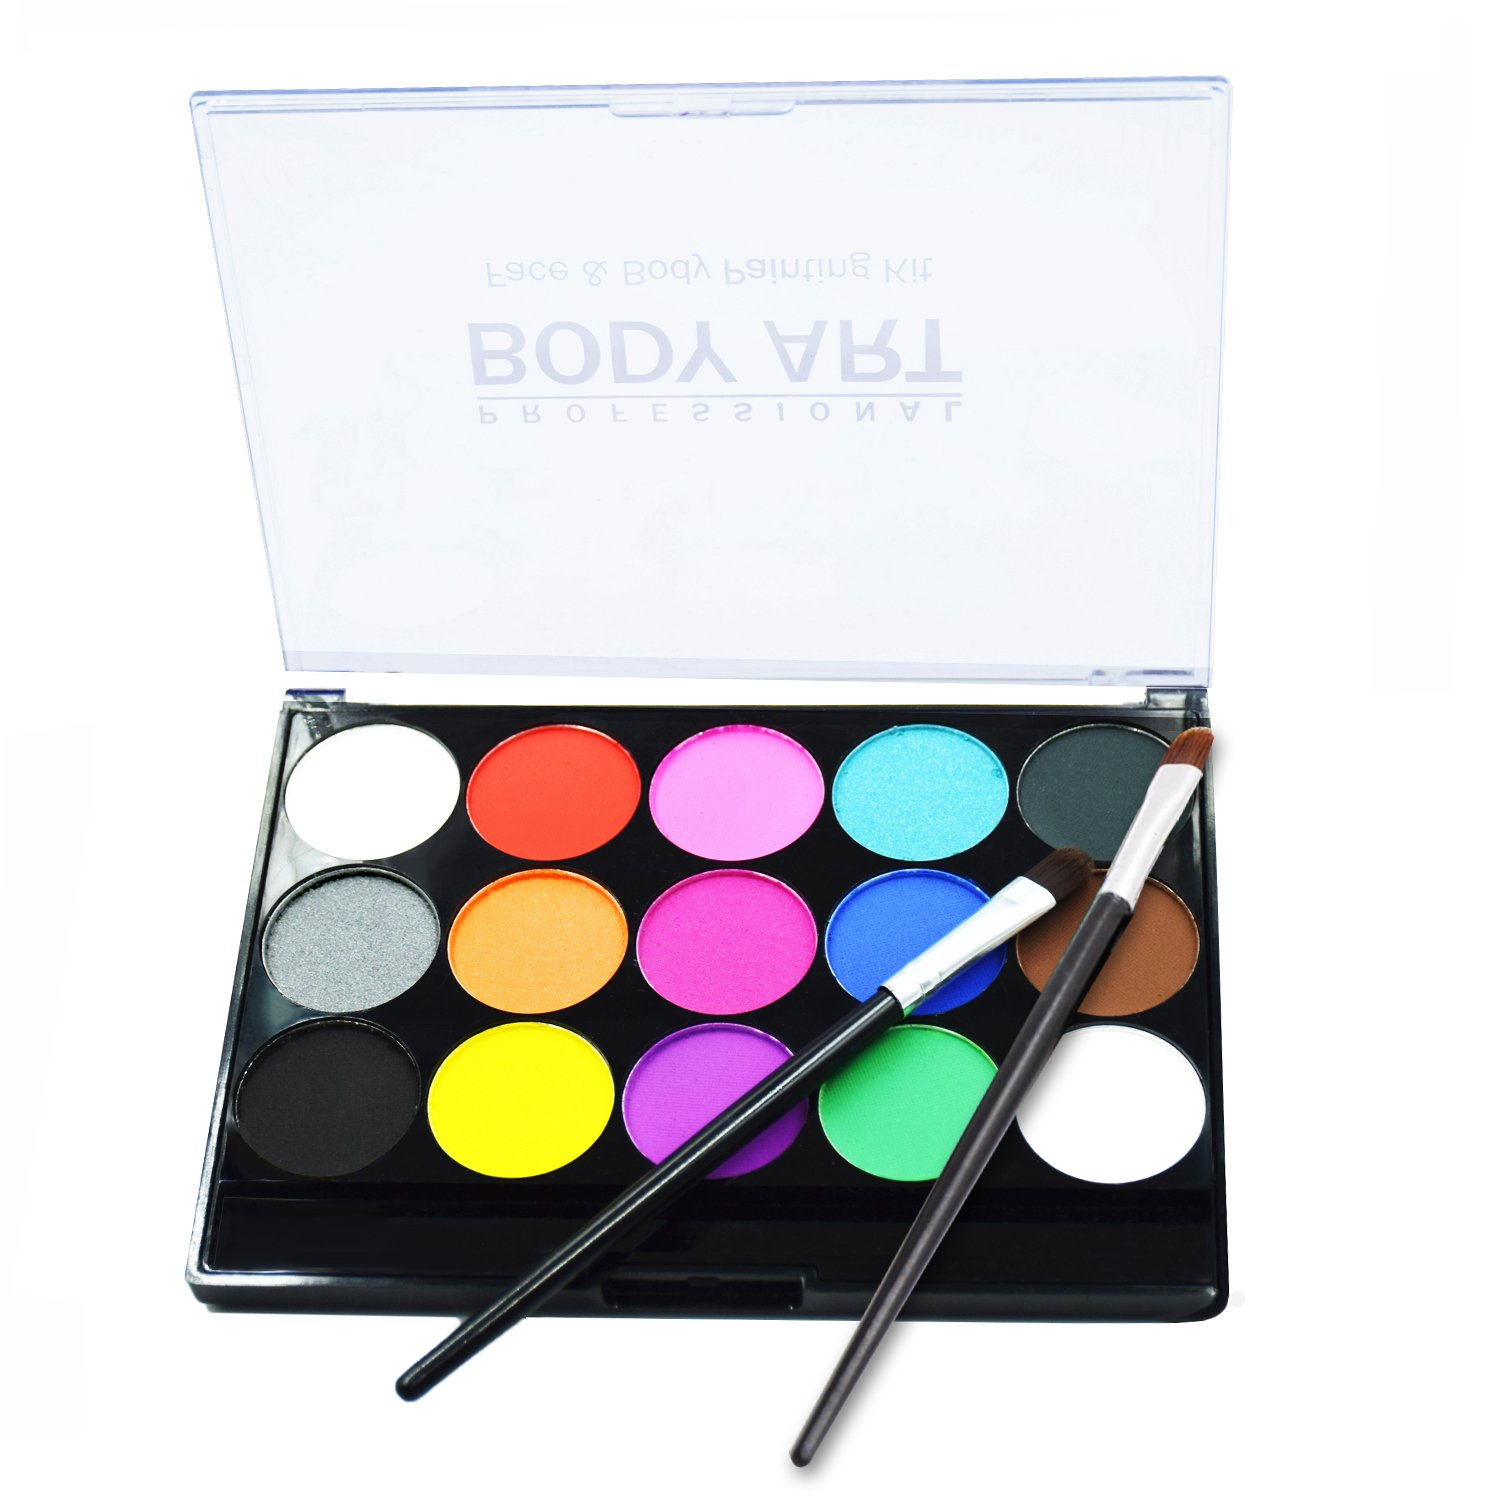 Face Body Paints Kits Kids Hypoallergenic Make up Palette-Safe & Non-Toxic, Ideal for Halloween Party Face Painting - Easy to Wear and Remove-15 Colors with Two Fine Brush by MooMoo Baby